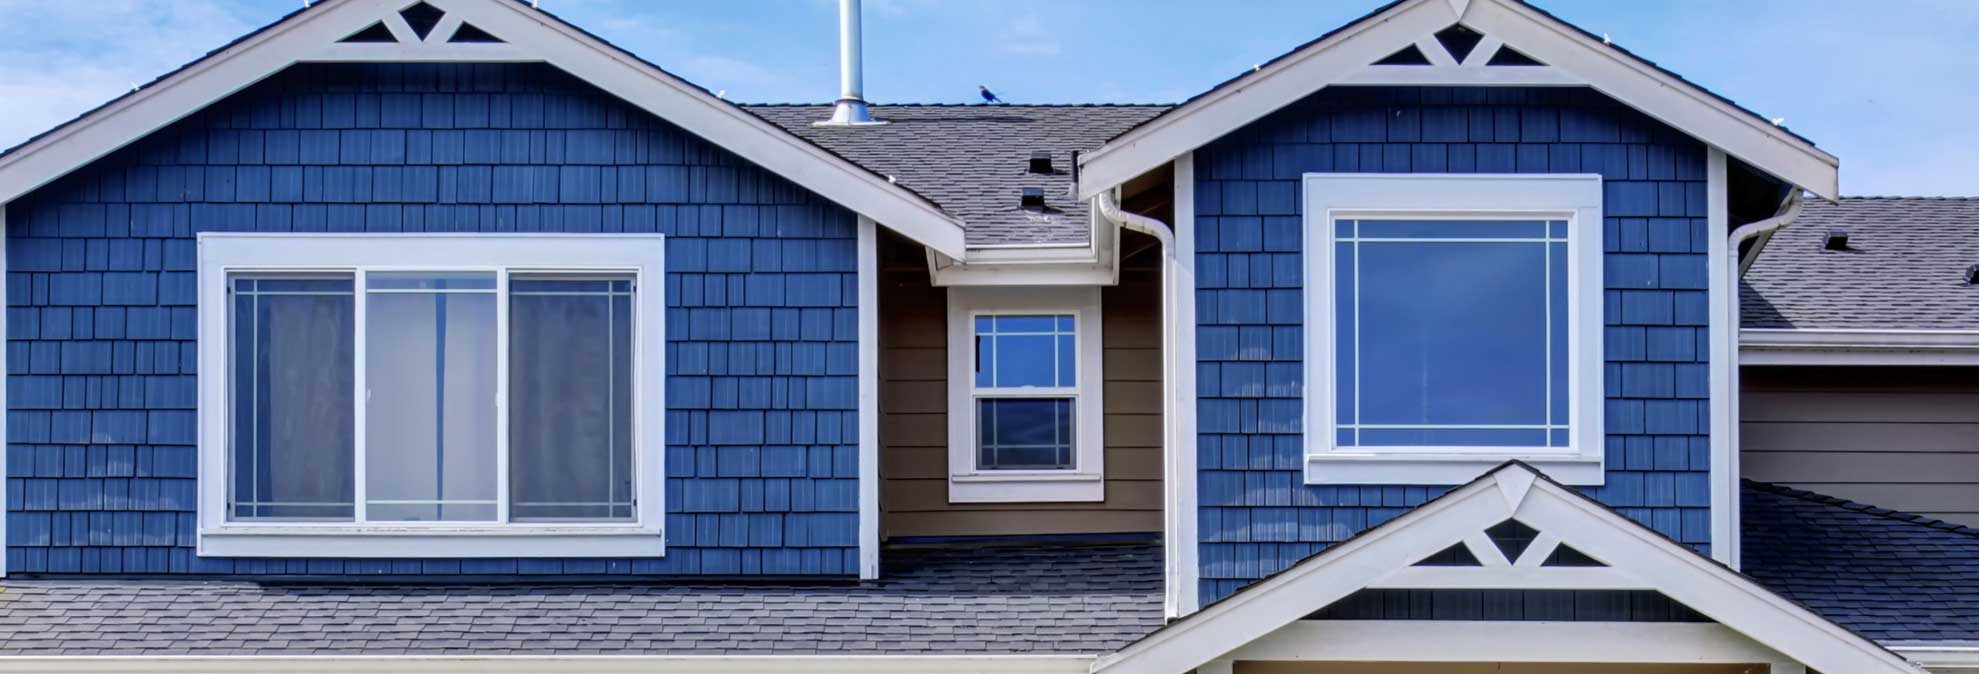 Best siding buying guide consumer reports - Types of exterior finishes for homes ...